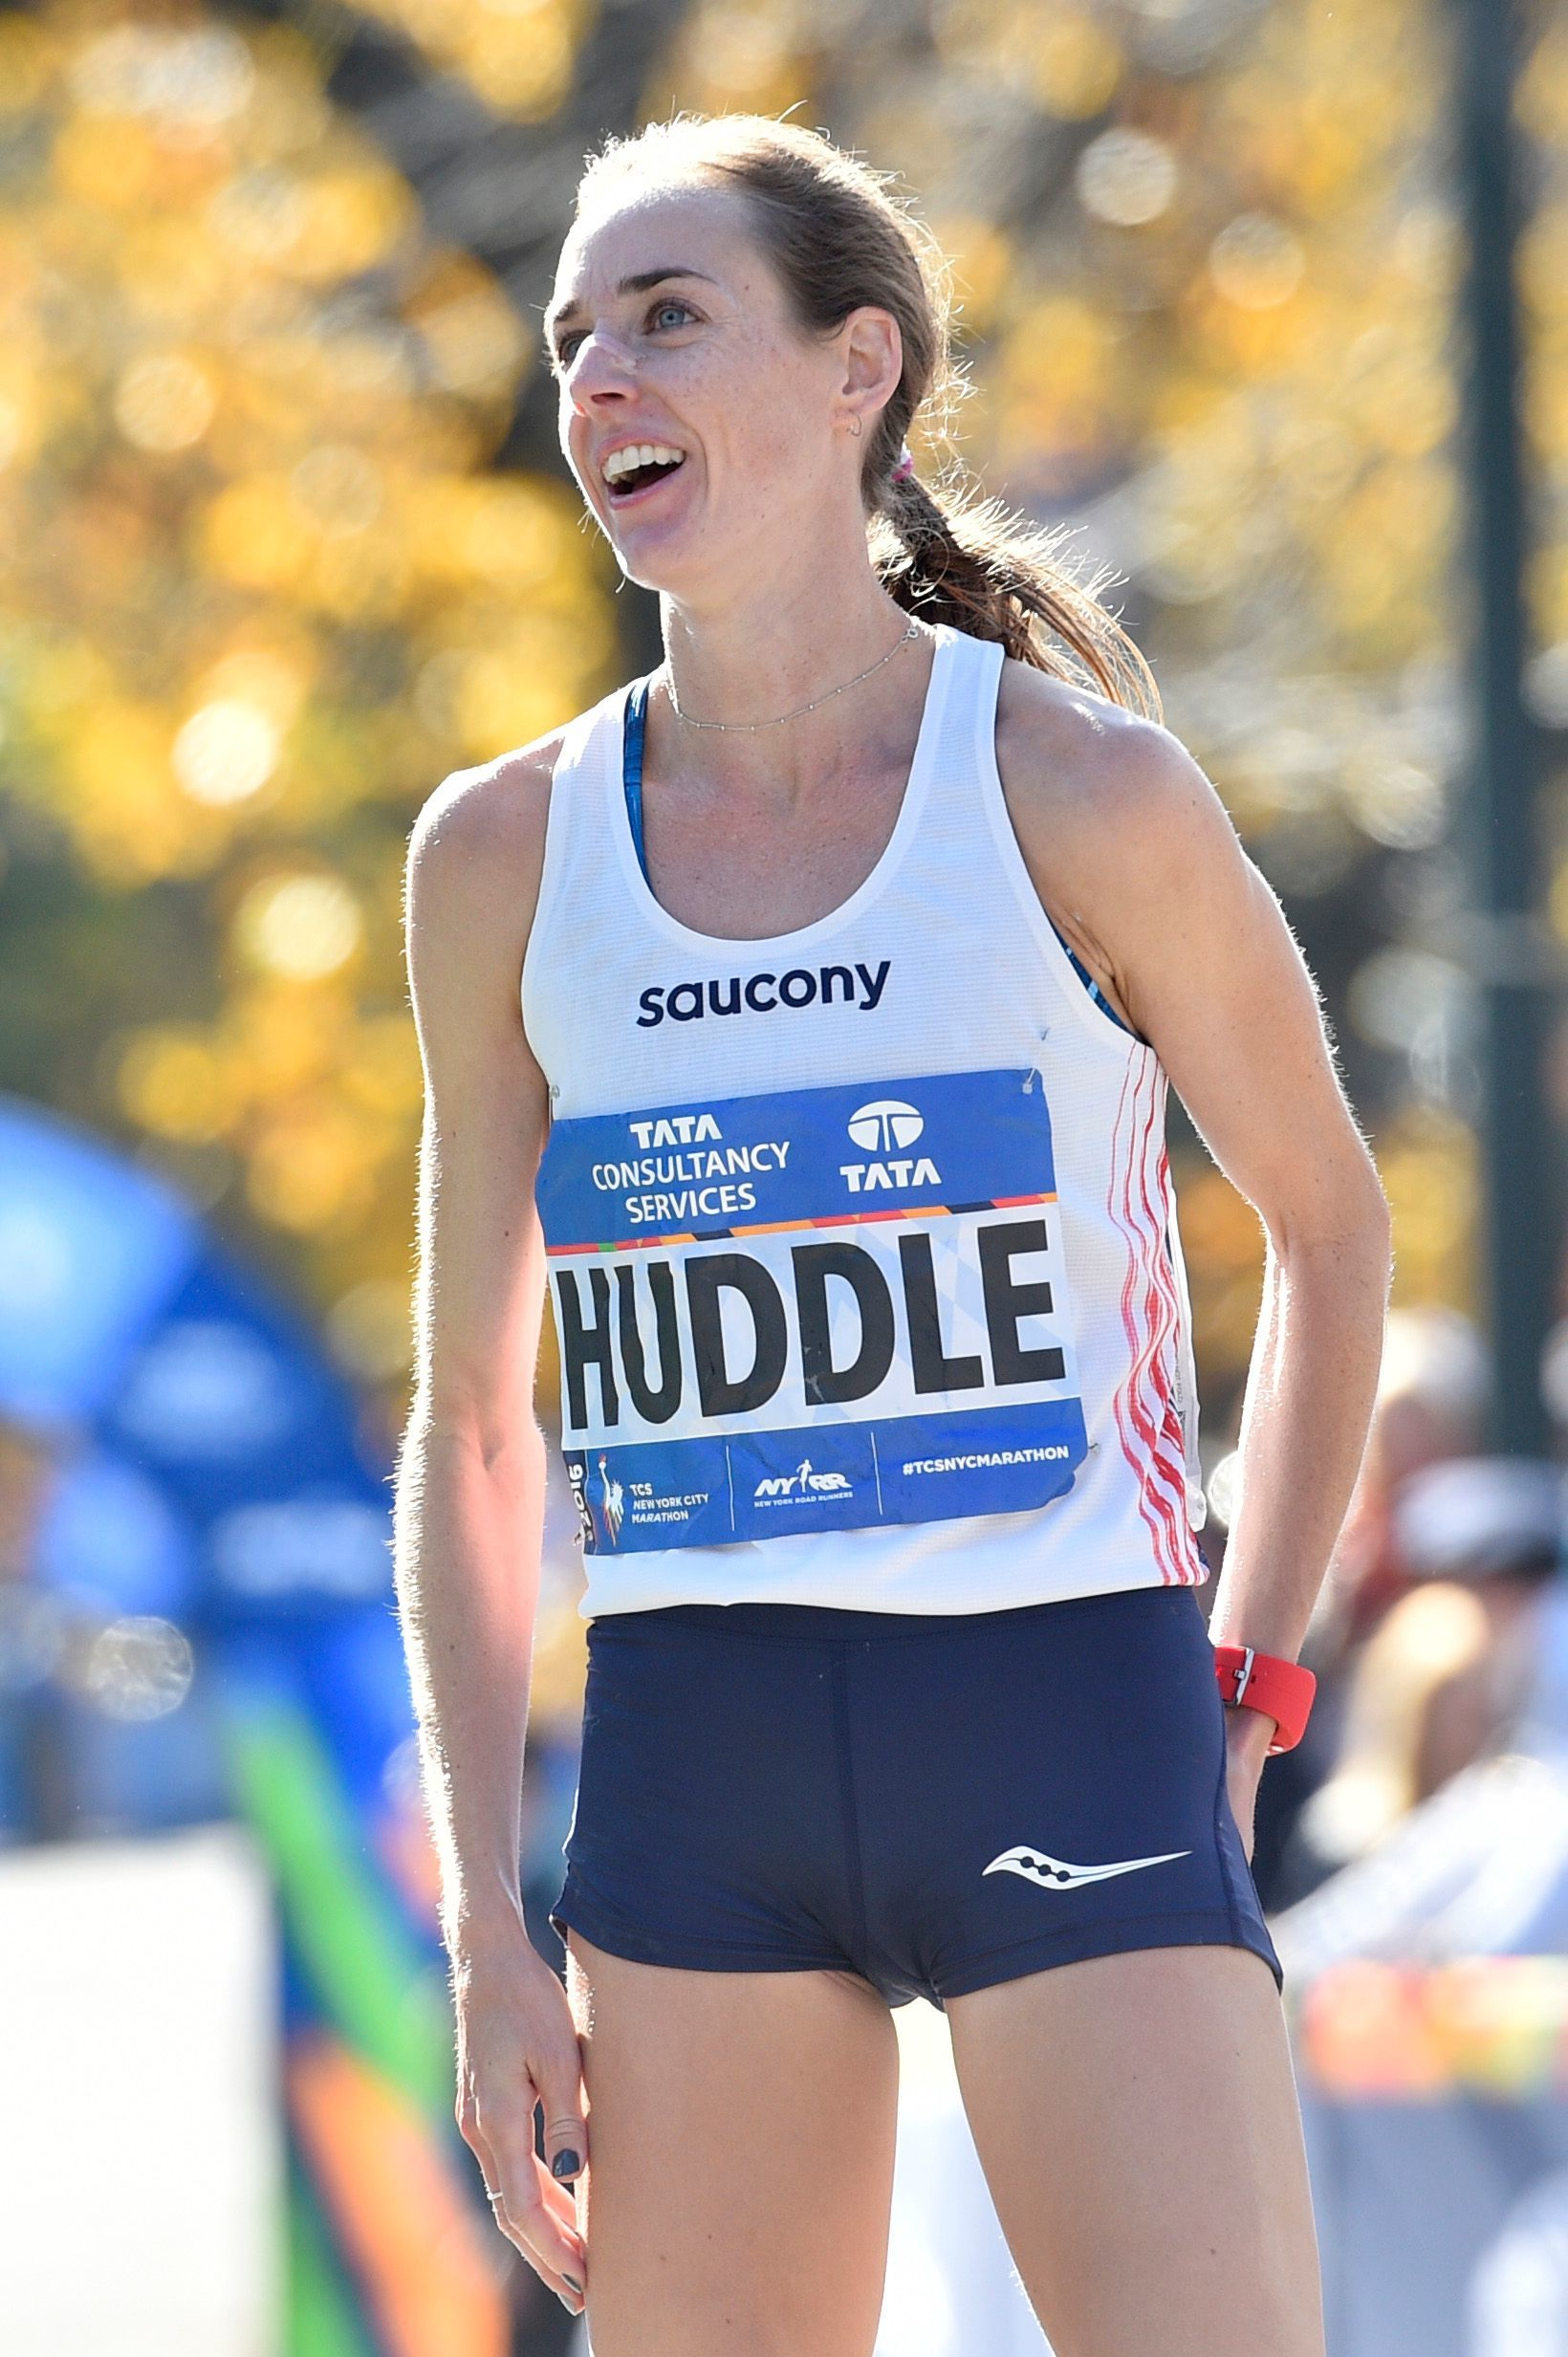 Molly Huddle reacts after crossing the finish line in third place at the New York City Marathon in 2016.